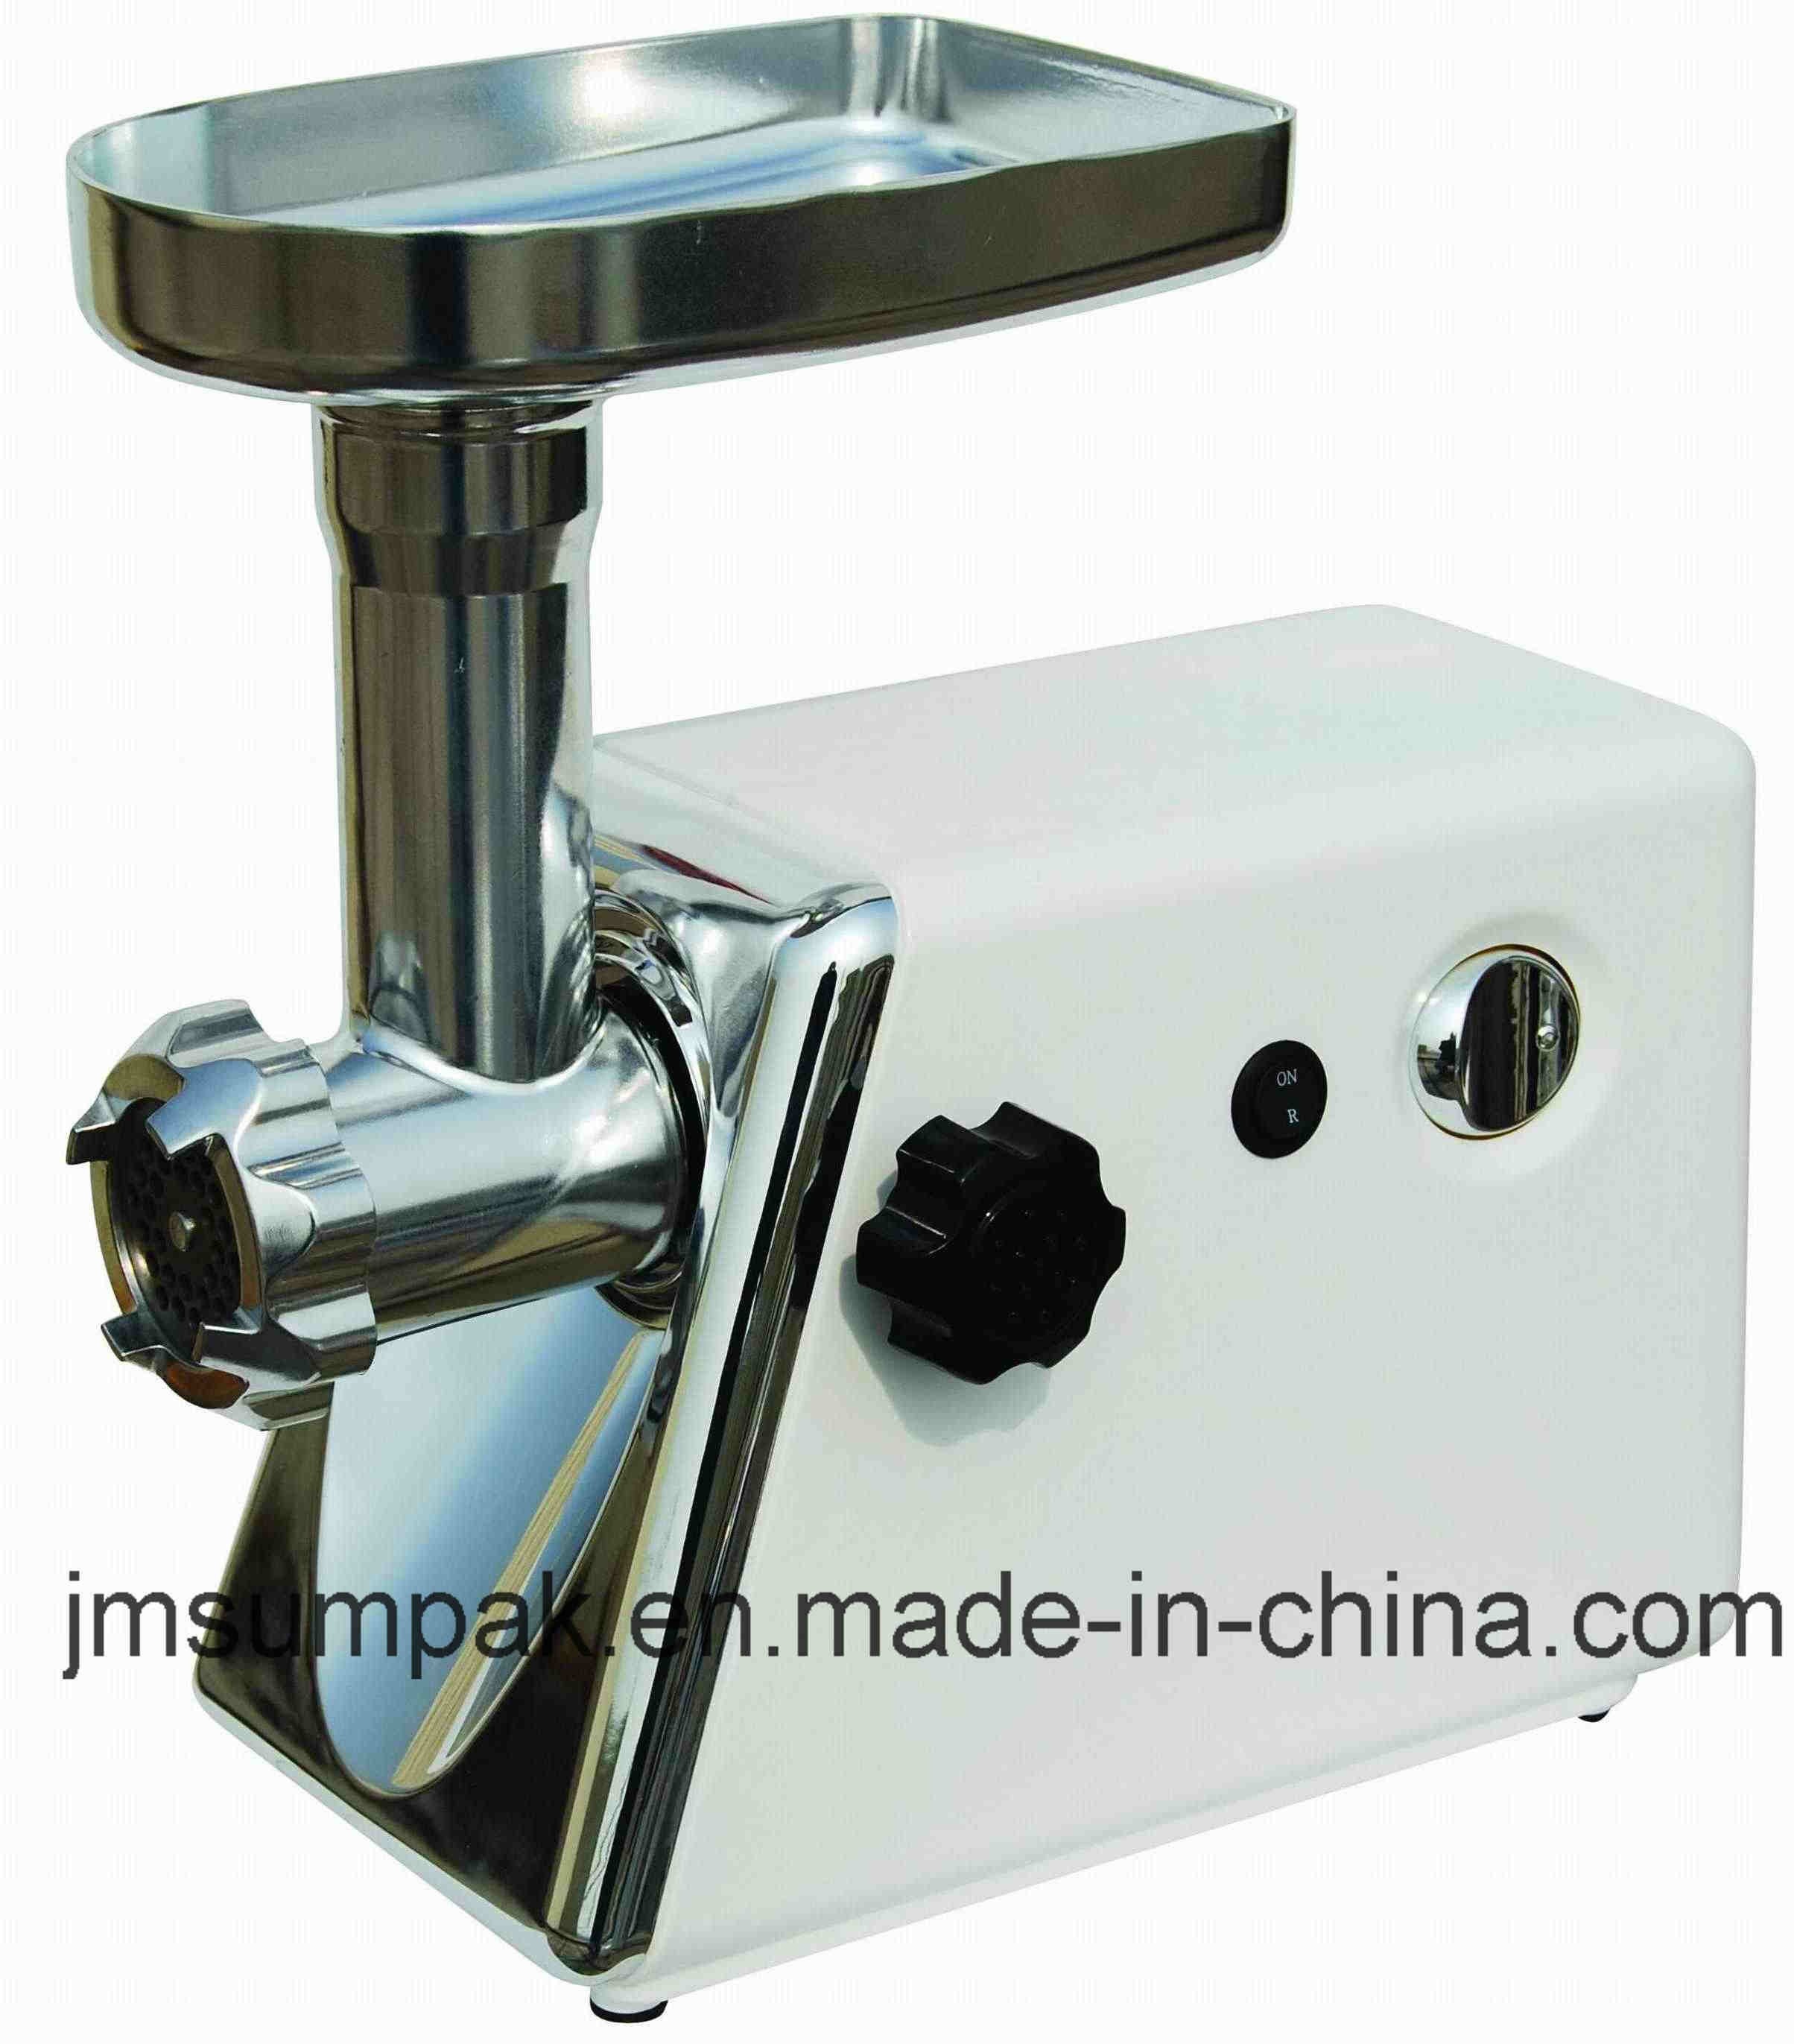 Powerful Professional Meat Grinder